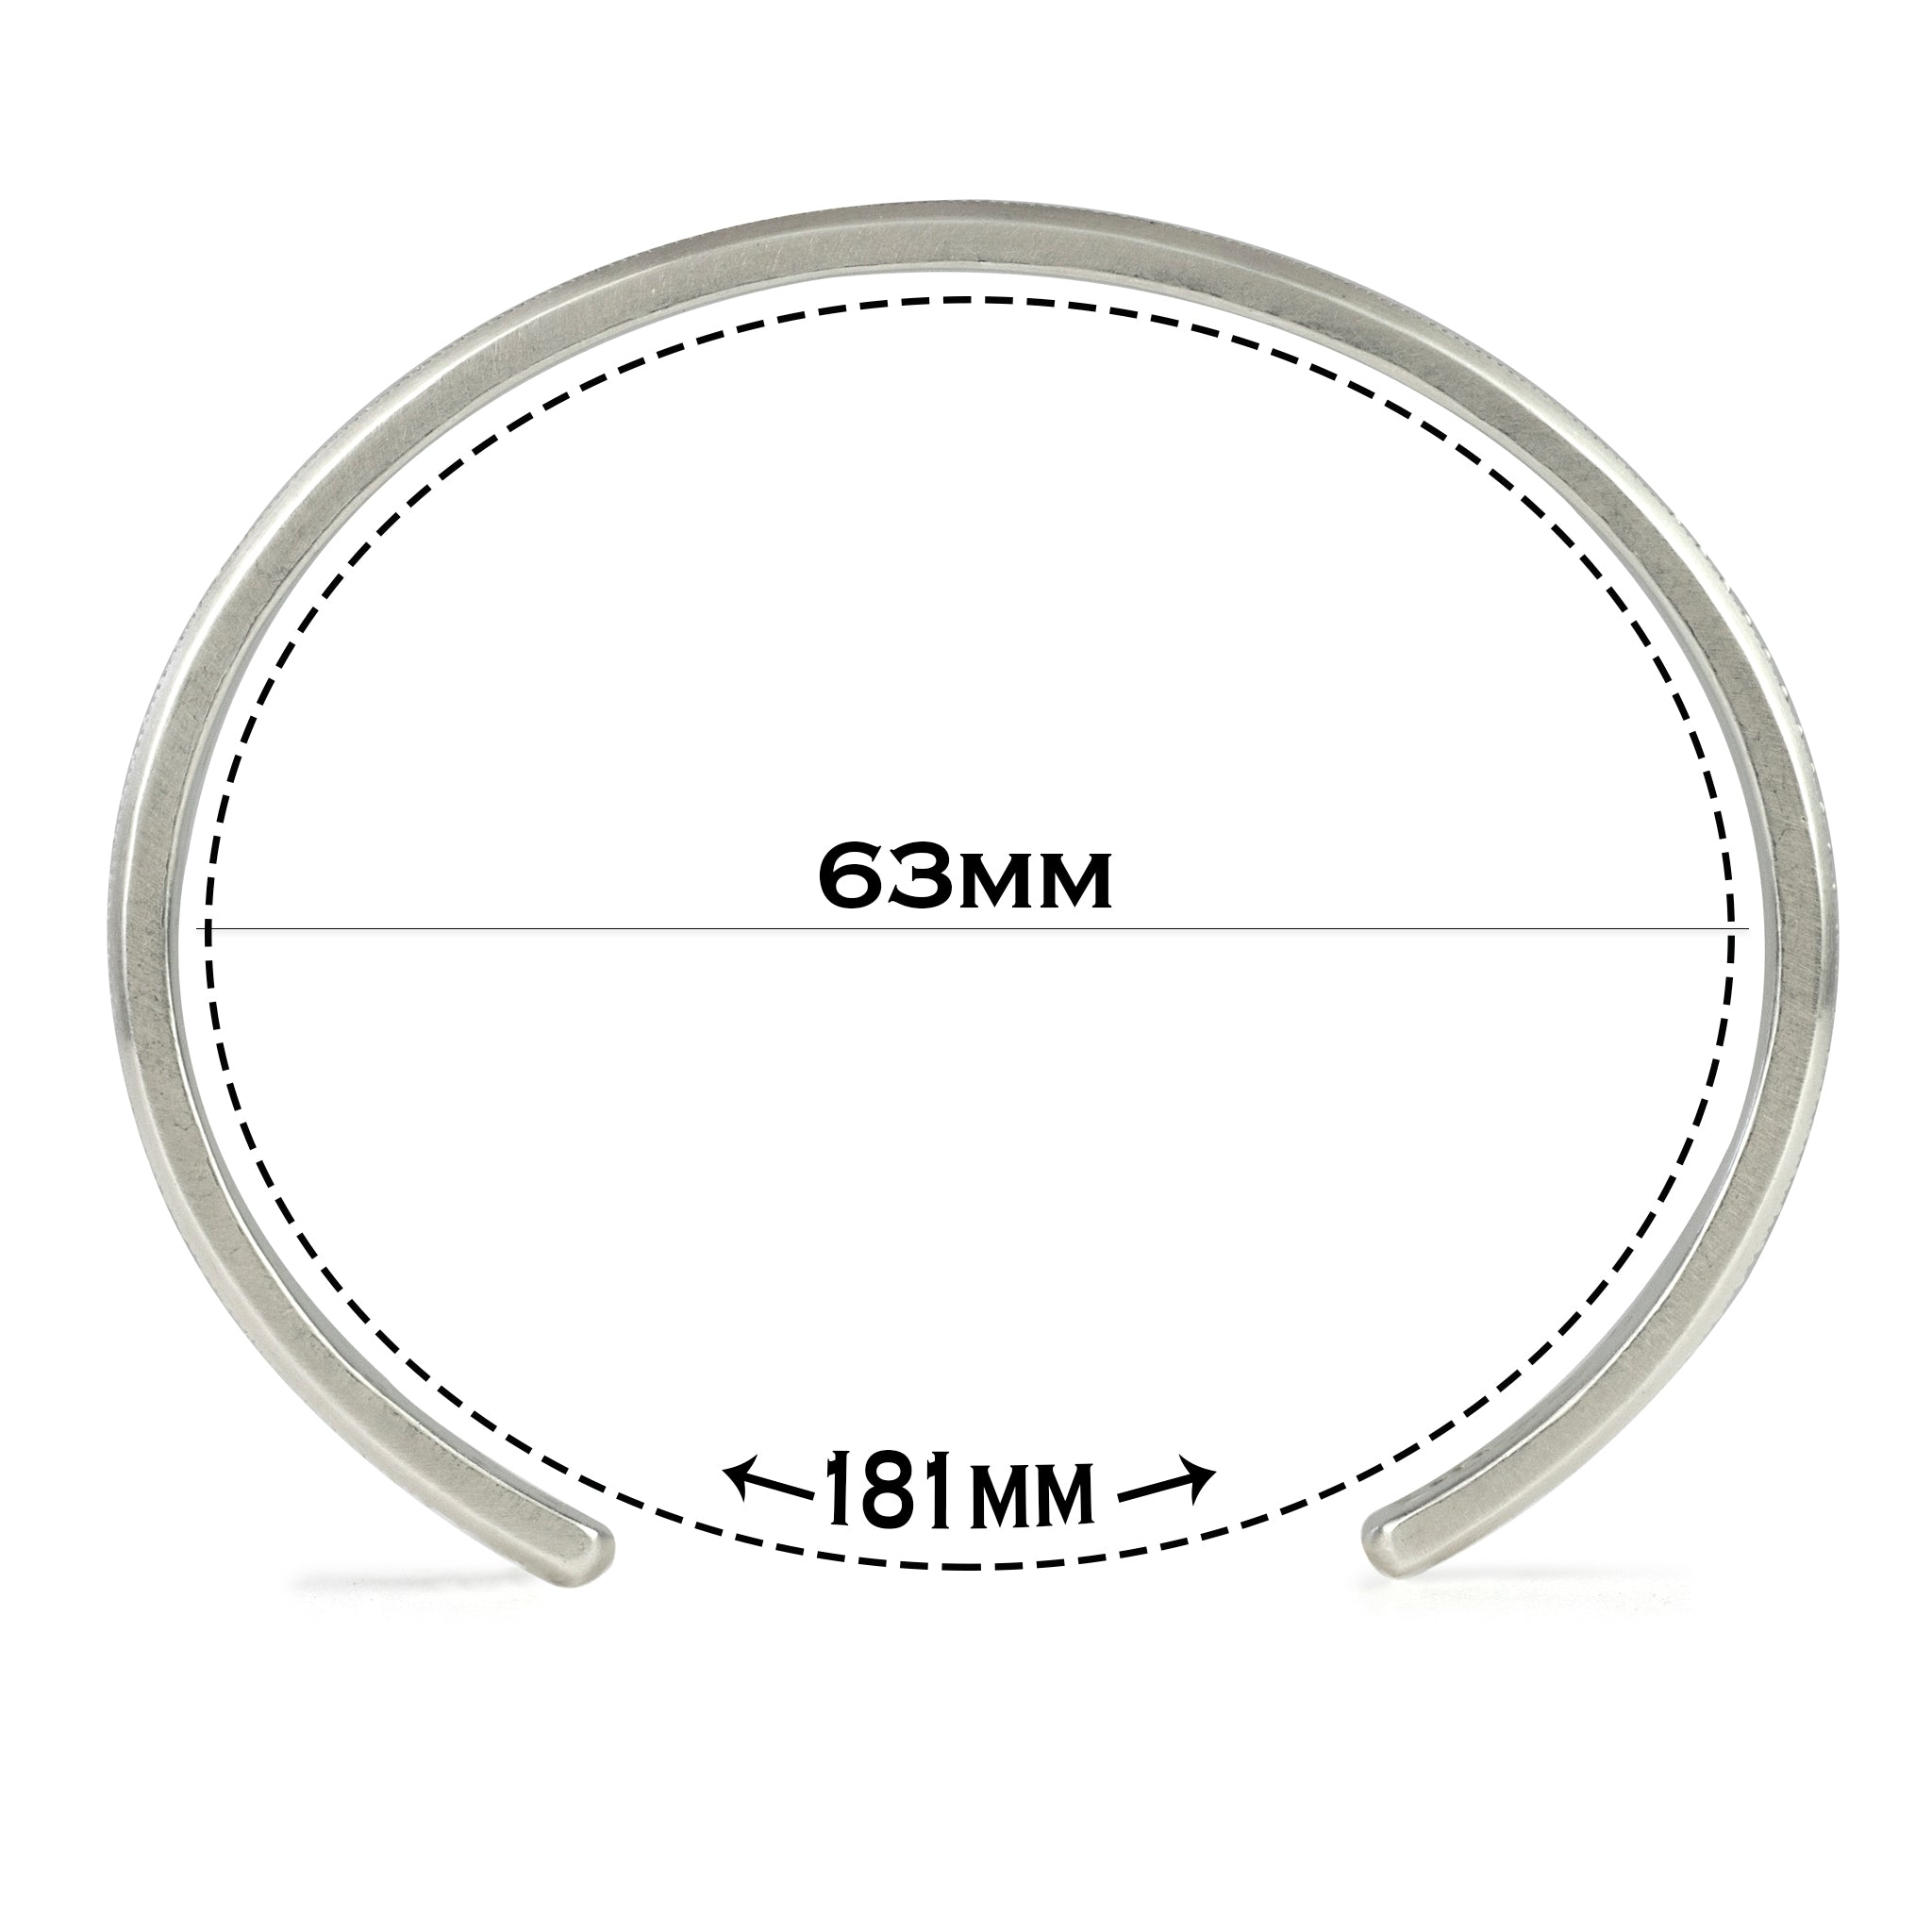 Medium size cuff with text explaining the 181 millimeter circumference and illustrating size difference next to images of other sizes.